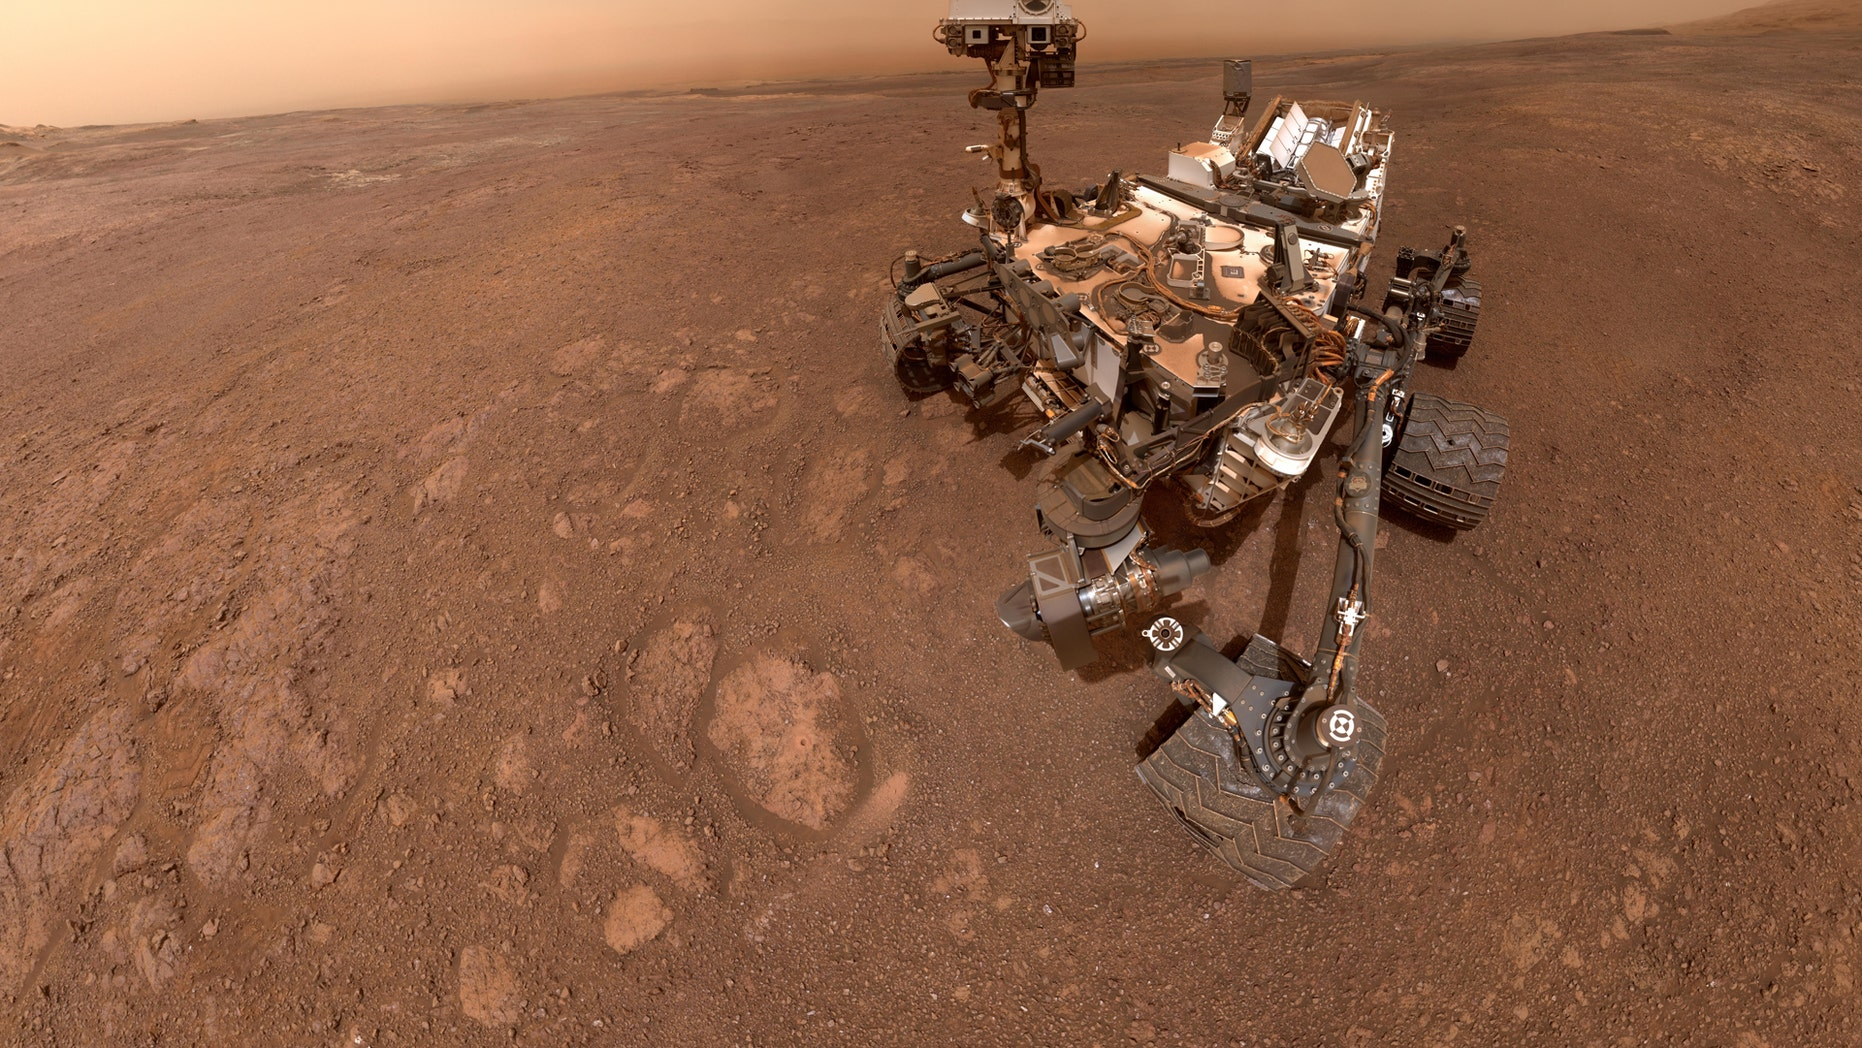 NASA's Curiosity Mars rover snaps stunning selfie, starts new adventure on the Red Planet | Fox News